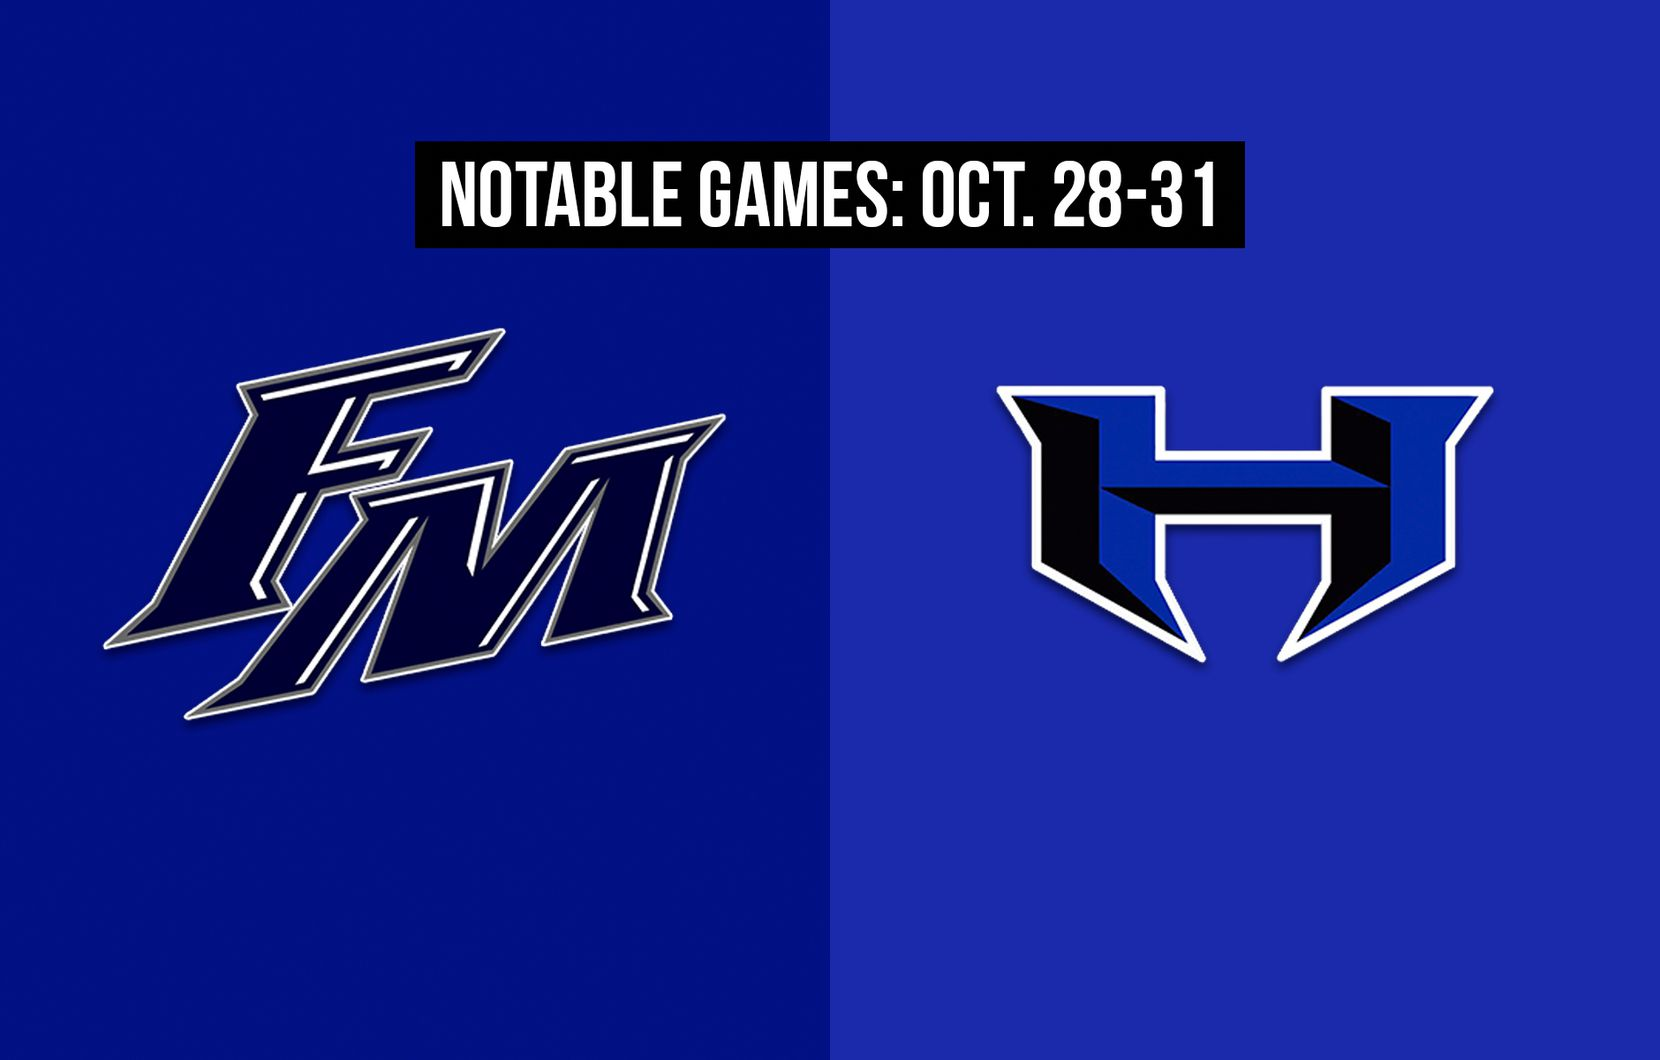 Notable games for the week of Oct. 28-31 of the 2020 season: Flower Mound vs. Hebron.